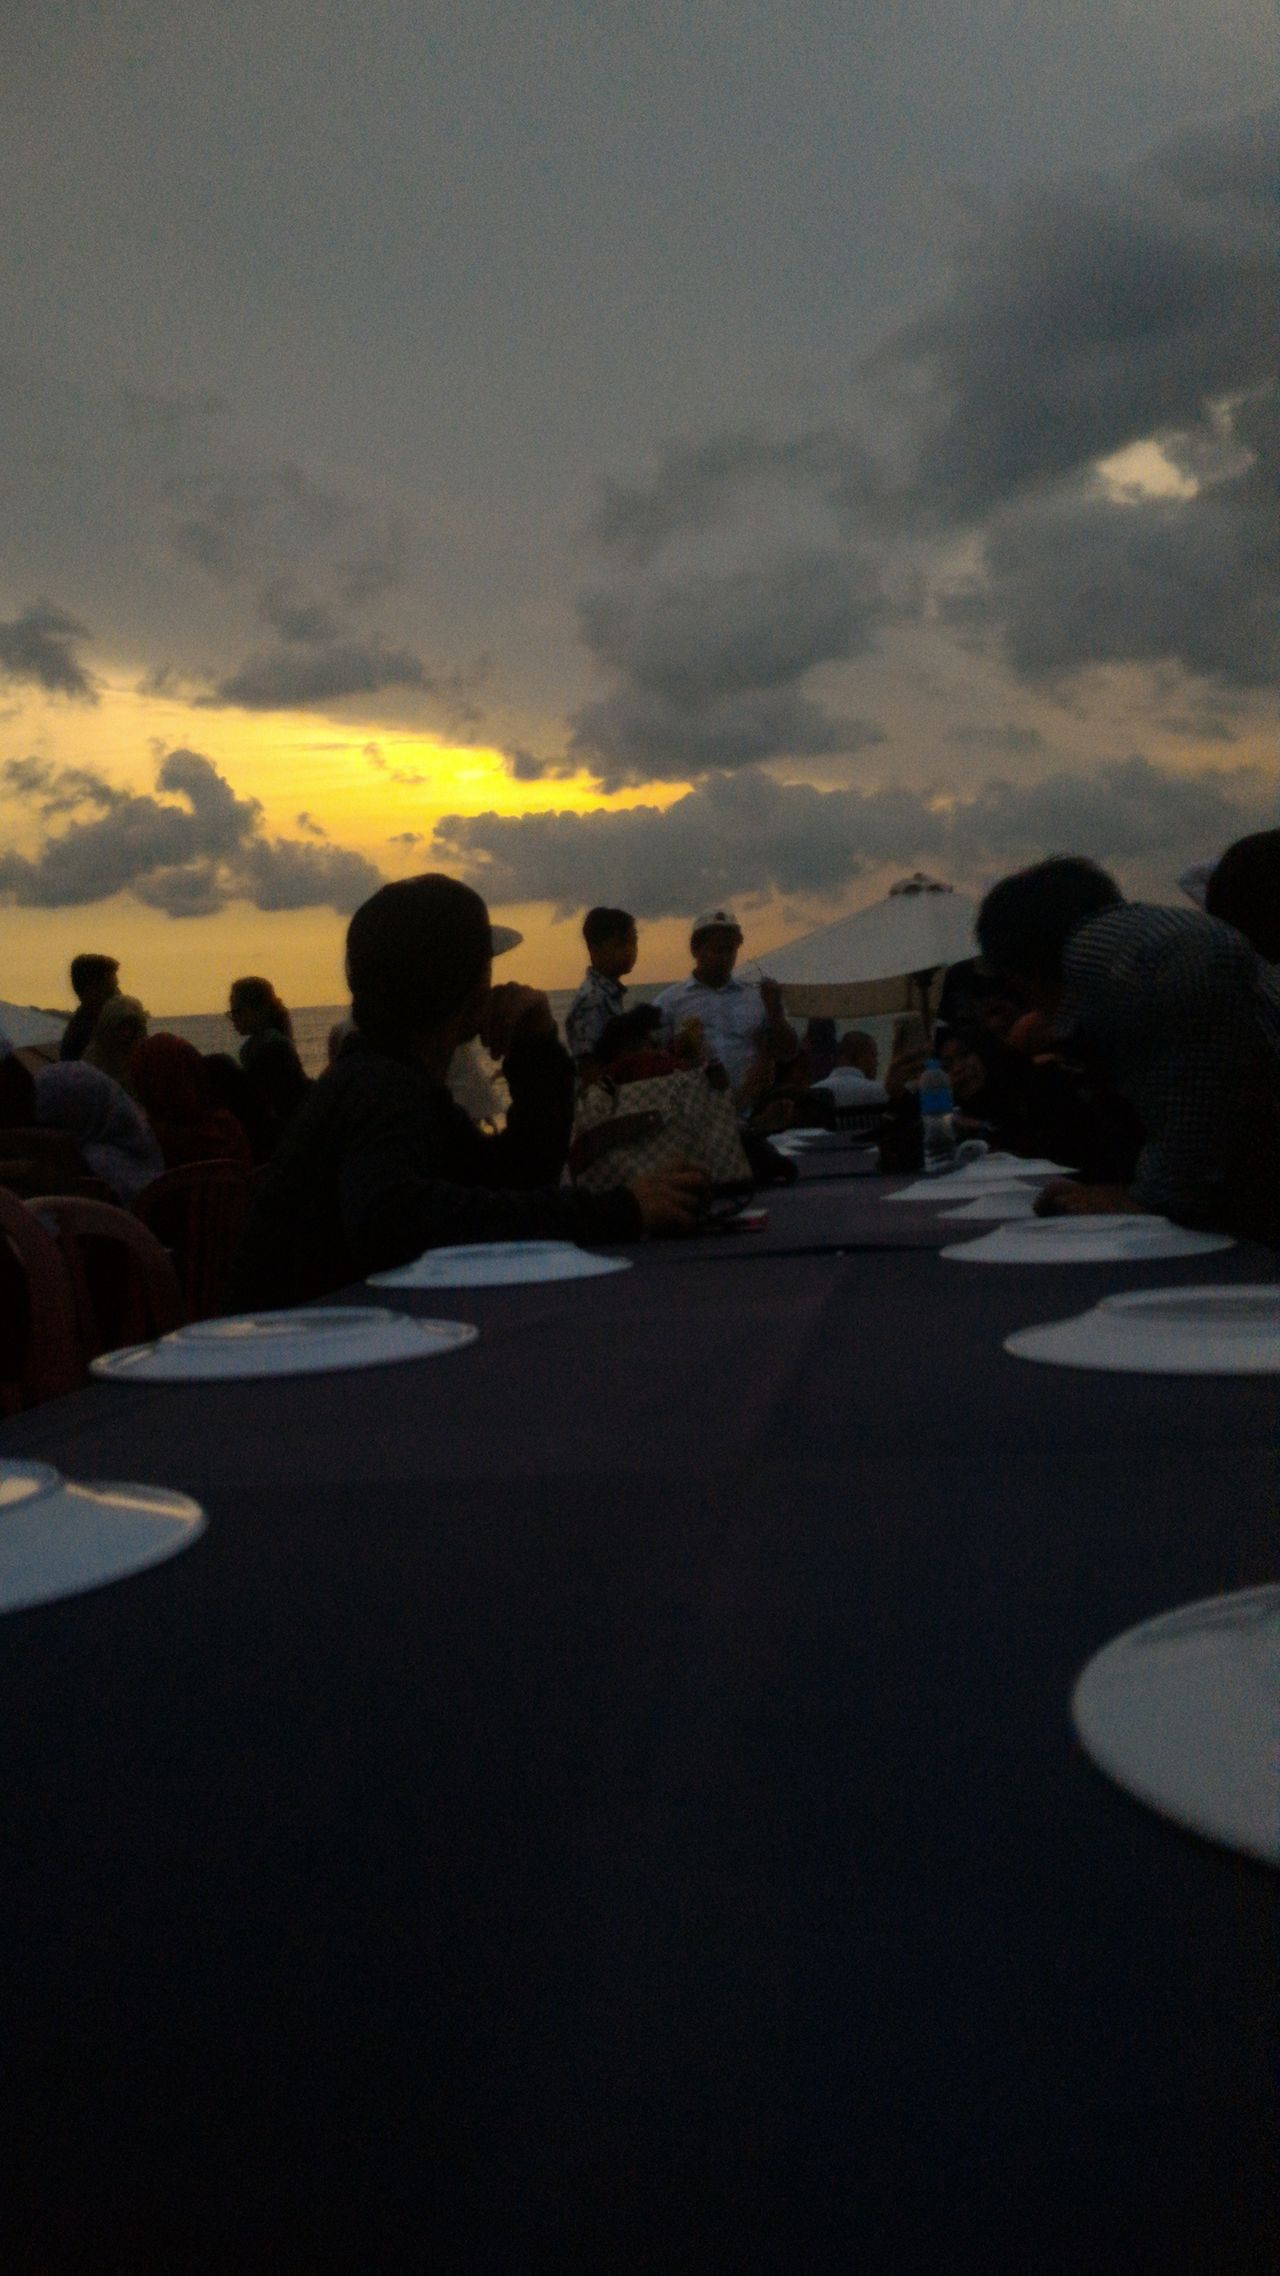 dinner on the beachSunset Sky Cloud - Sky Dusk Dramatic Sky Outdoors Scenics Nature Beauty In Nature Night Astronomy People Dinner Dinner In The Beach Beach On Sunset Leisure Activity Sea Beauty Catch The Moment Weekend Activities Roadtrip Bali Lifestyles Holiday Trip Paint The Town Yellow